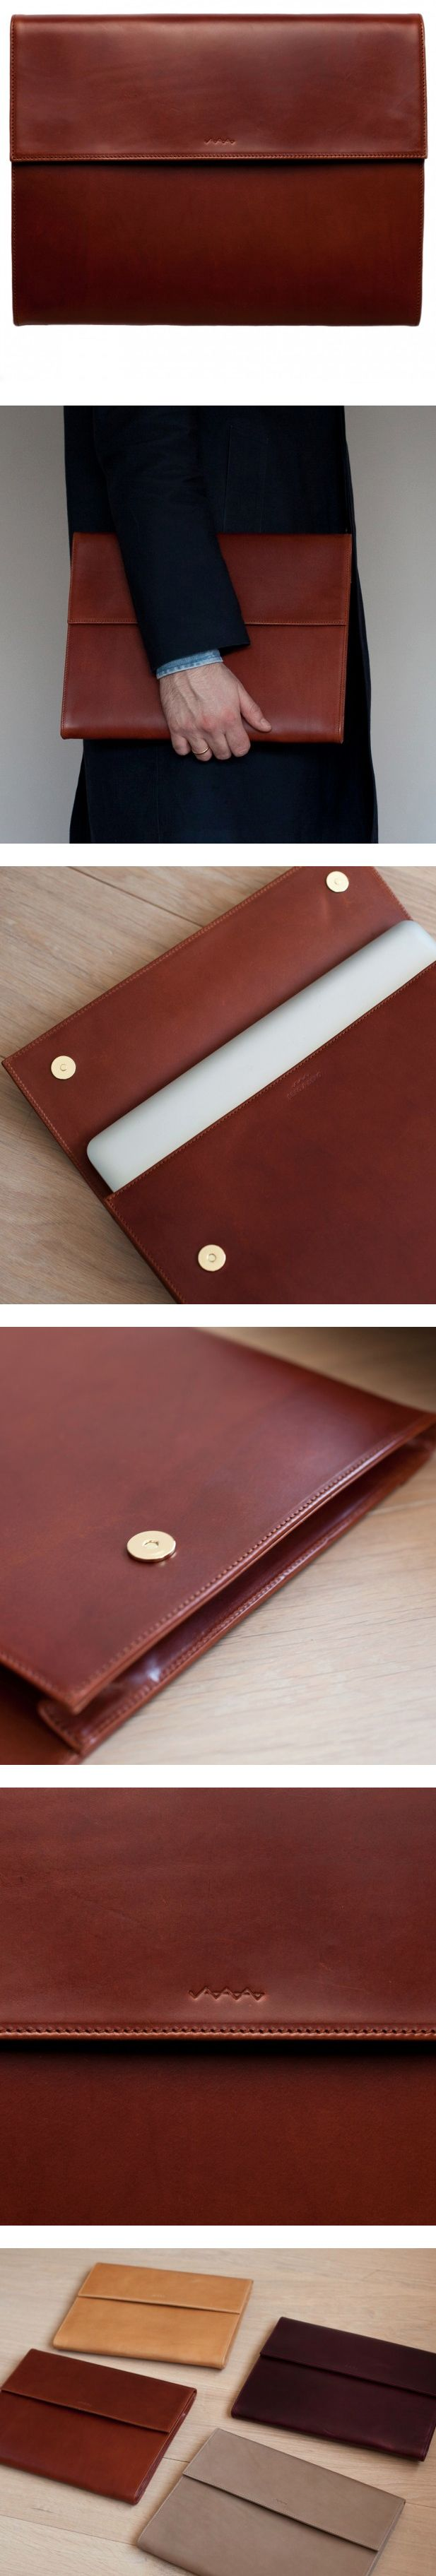 "Vachetta Leather Laptop Portfolio: A portfolio/slipcase made from rich vegetable tanned full grain buttero vachetta leather that will age beautifully. The portfolio is made to house a 13"" laptop. We had the MacBook 13"" in mind when we designed the case, but it will work beautifully with other 13"" laptops and the MacBok Air 13"" and 11"" inch models as well. Also room for some documents and a notebook alongside the laptop. Internal pocket for business cards etc."